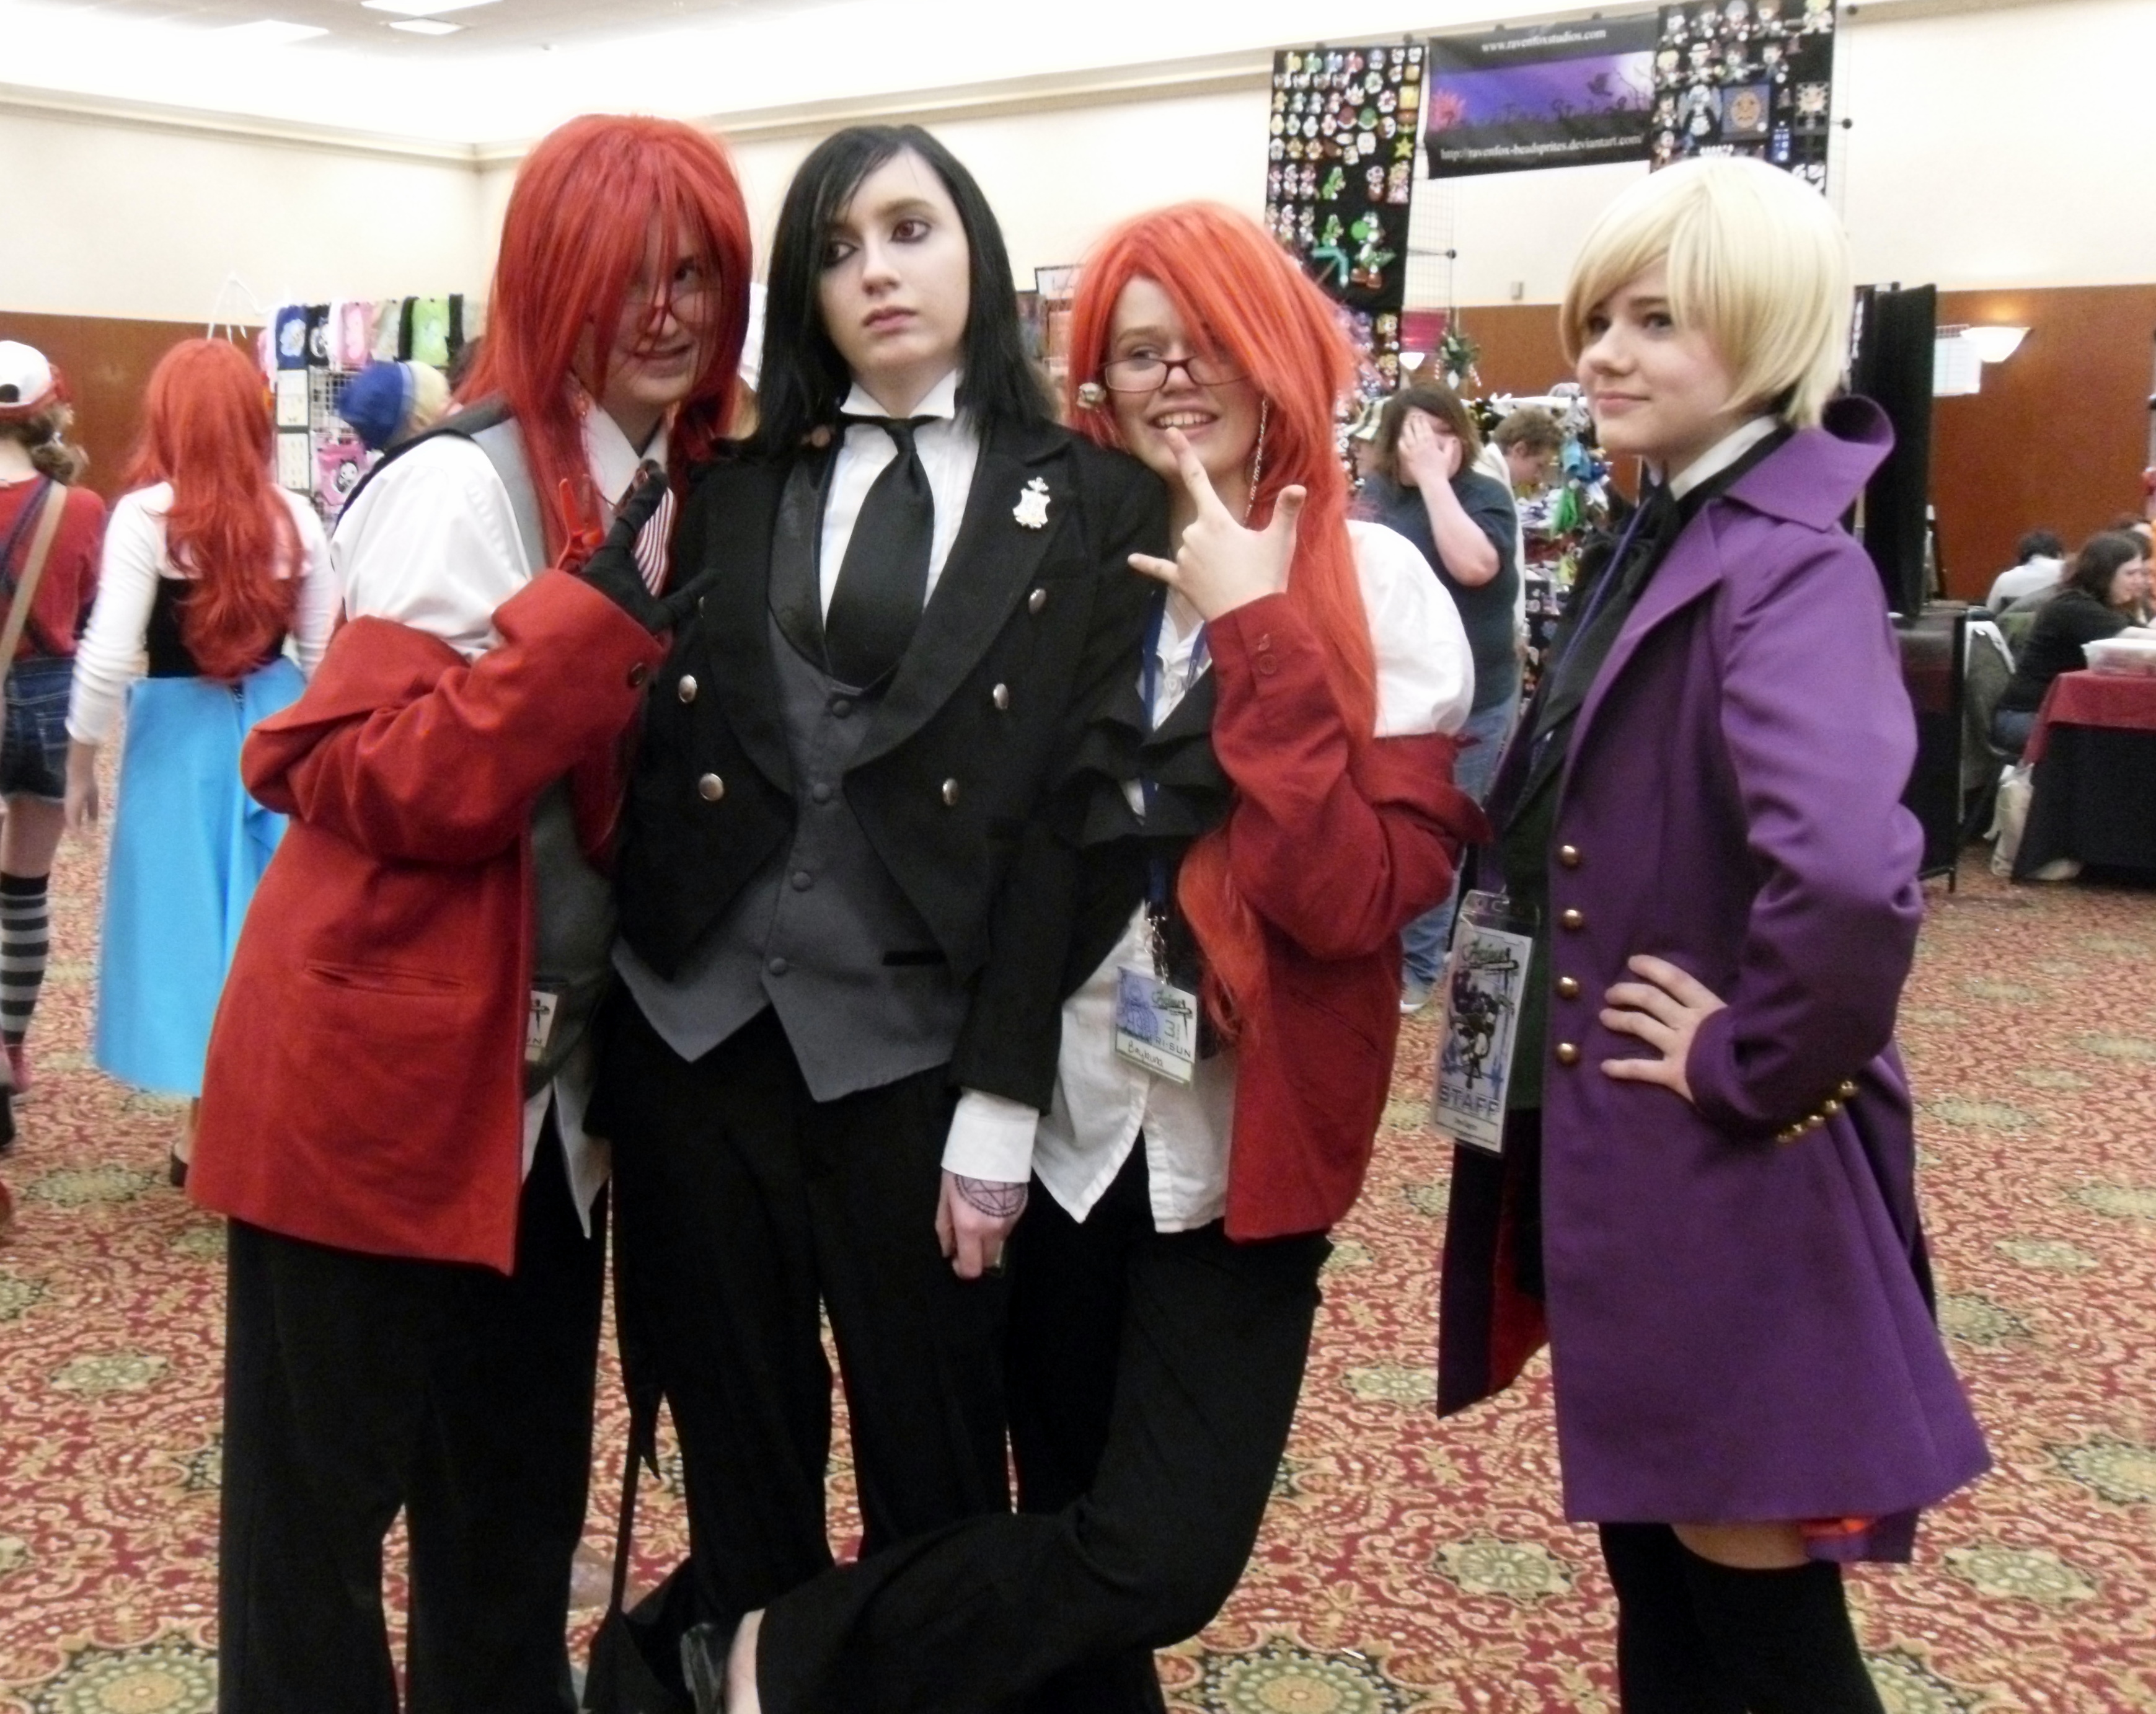 What Is An Anime Convention